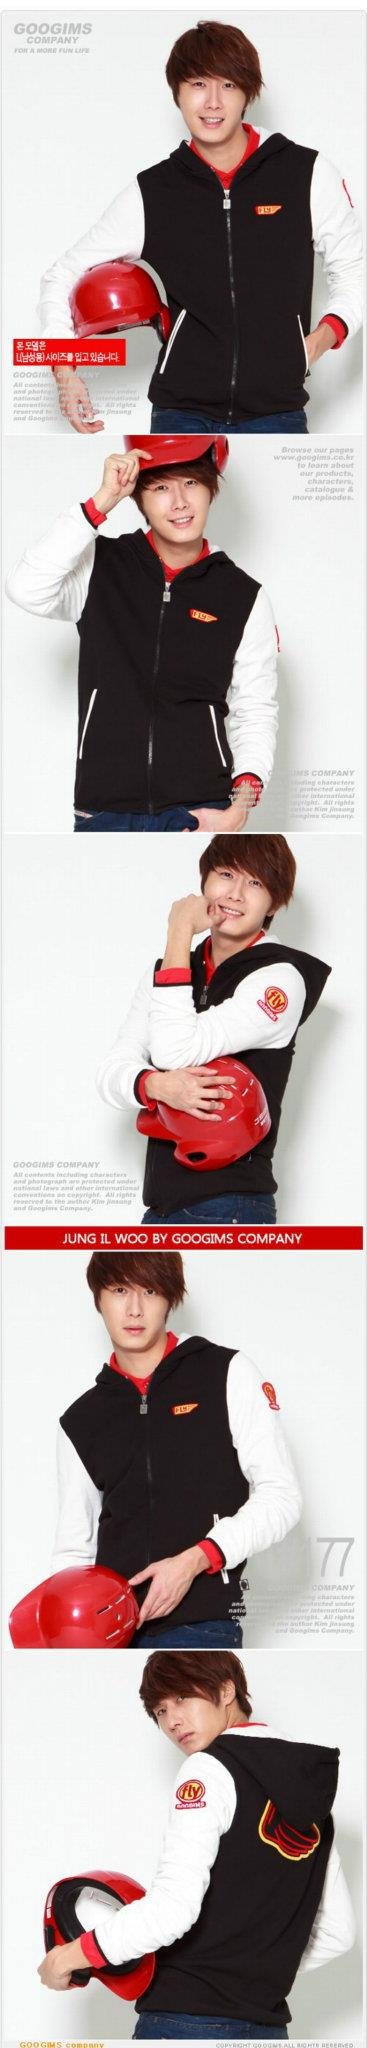 2011 10 Jung II-woo for Googims. Part 3 00016